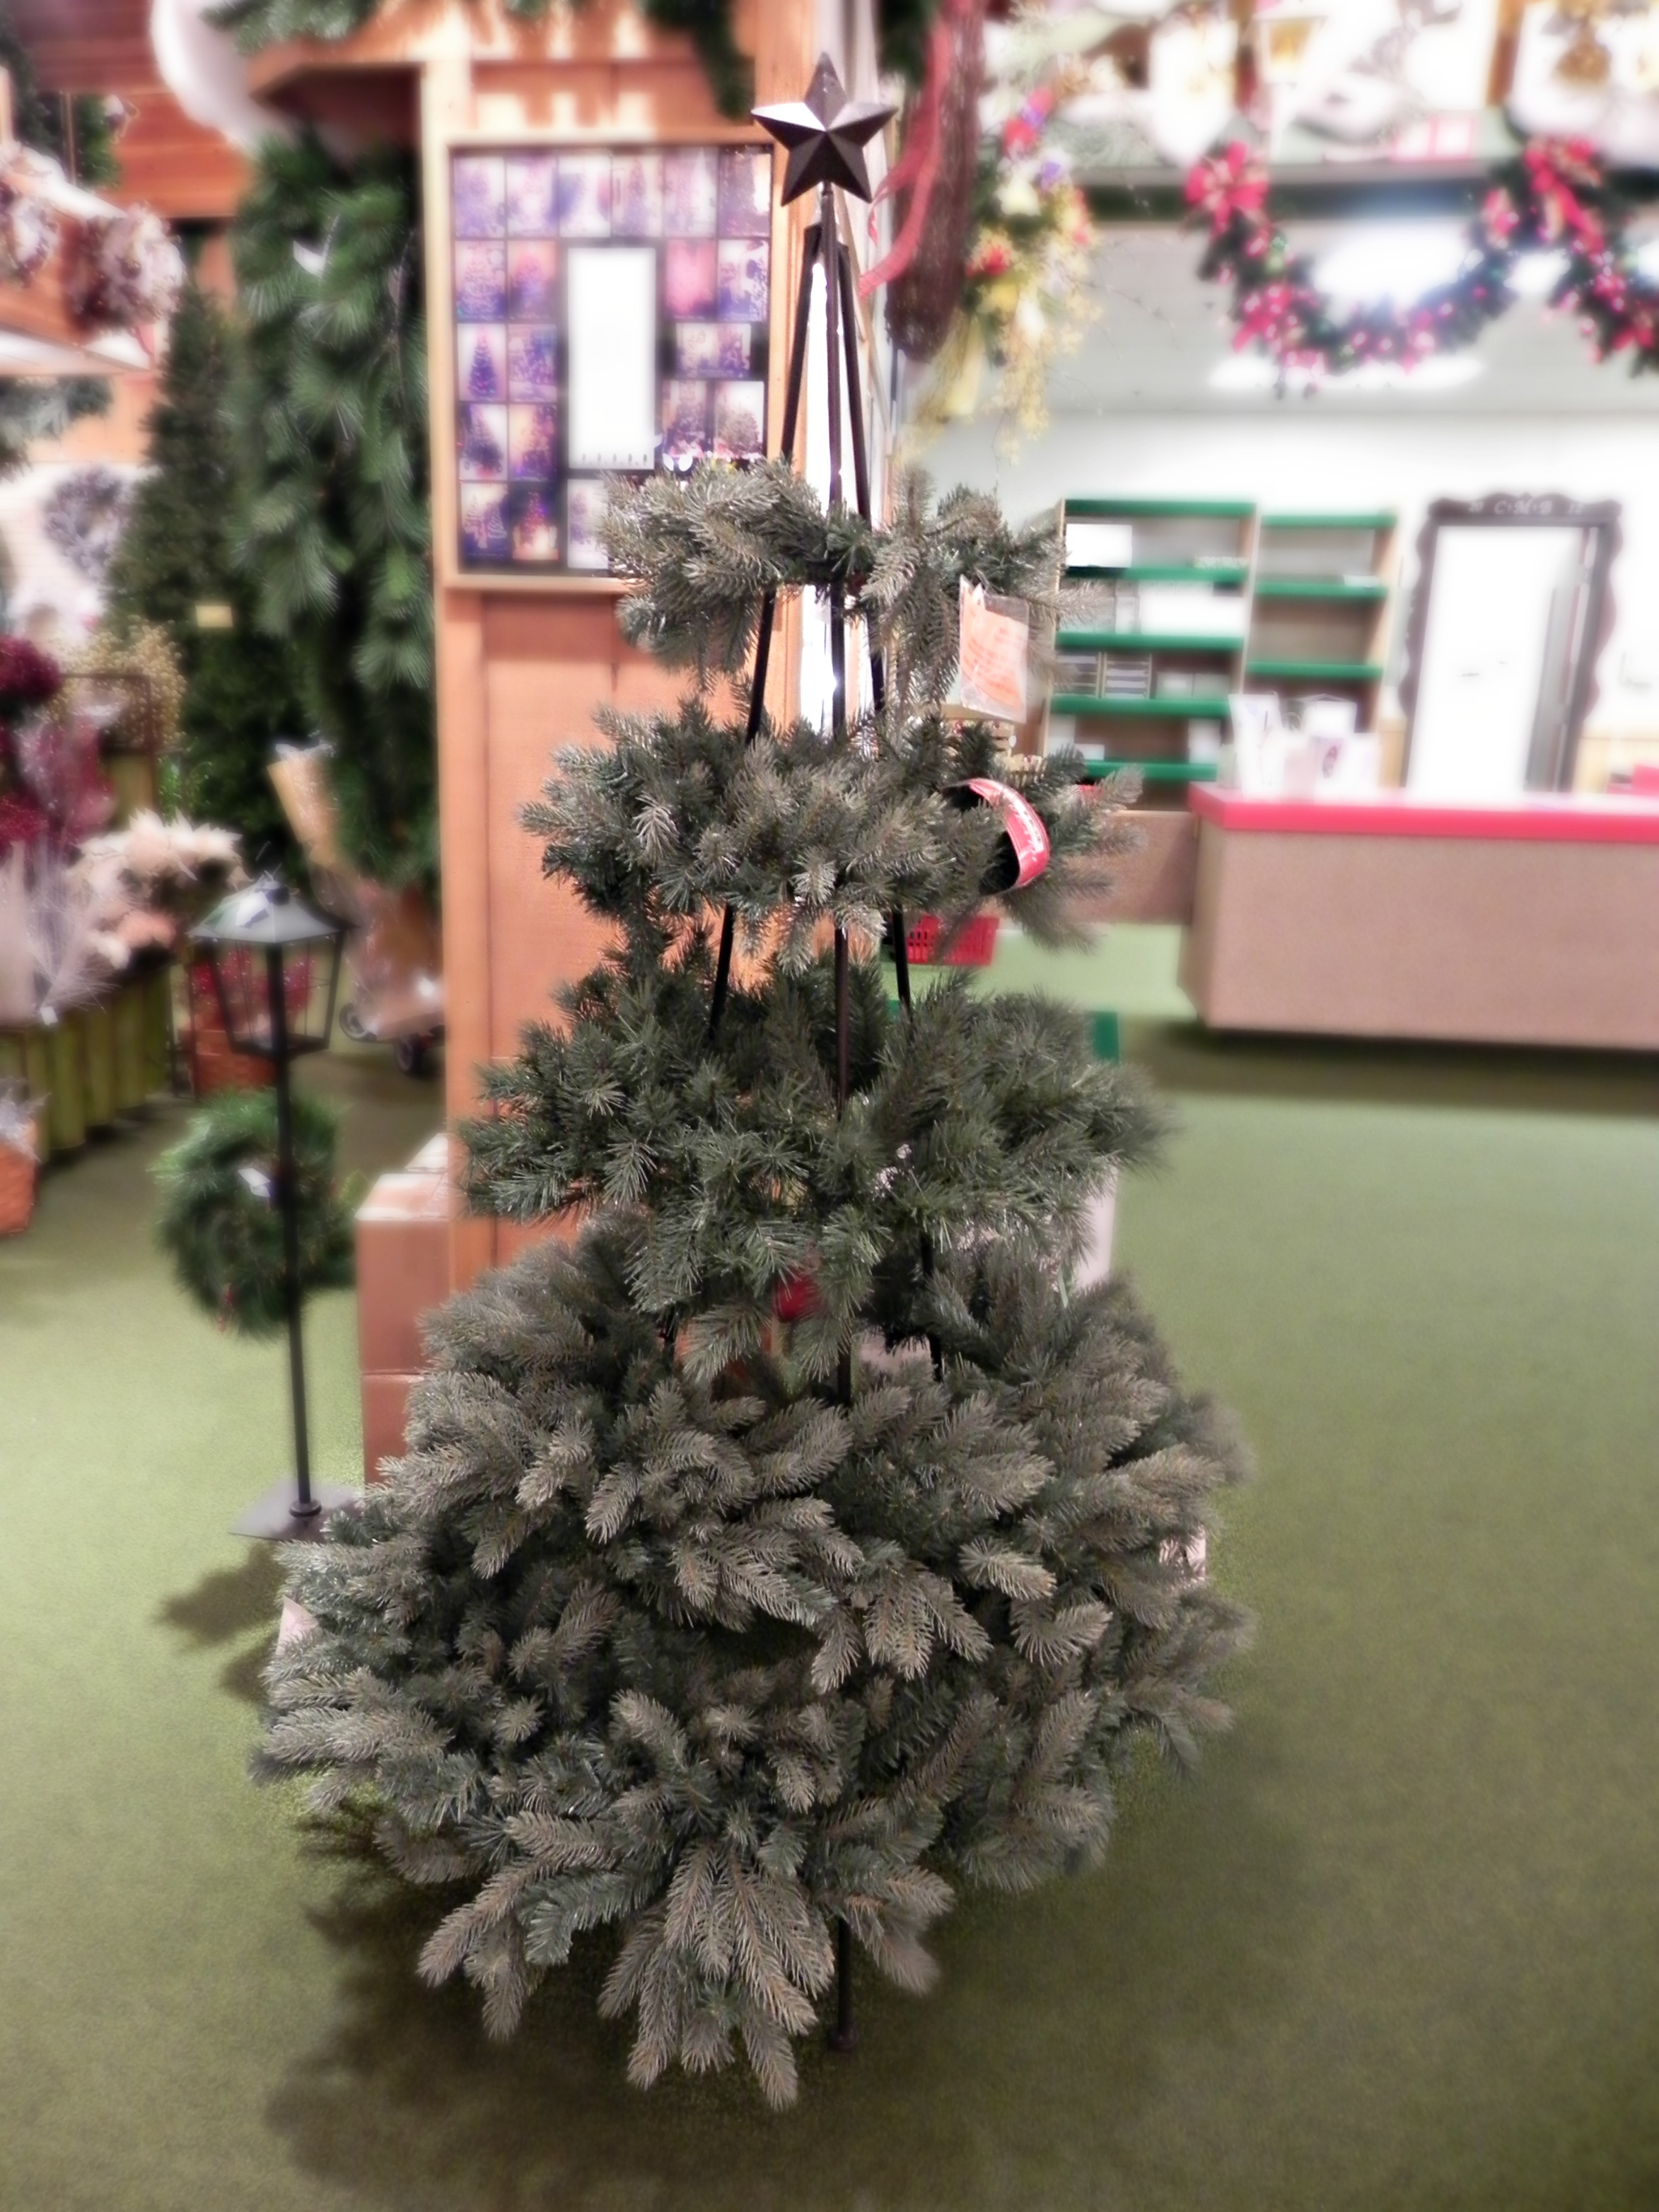 bronners wreath tree